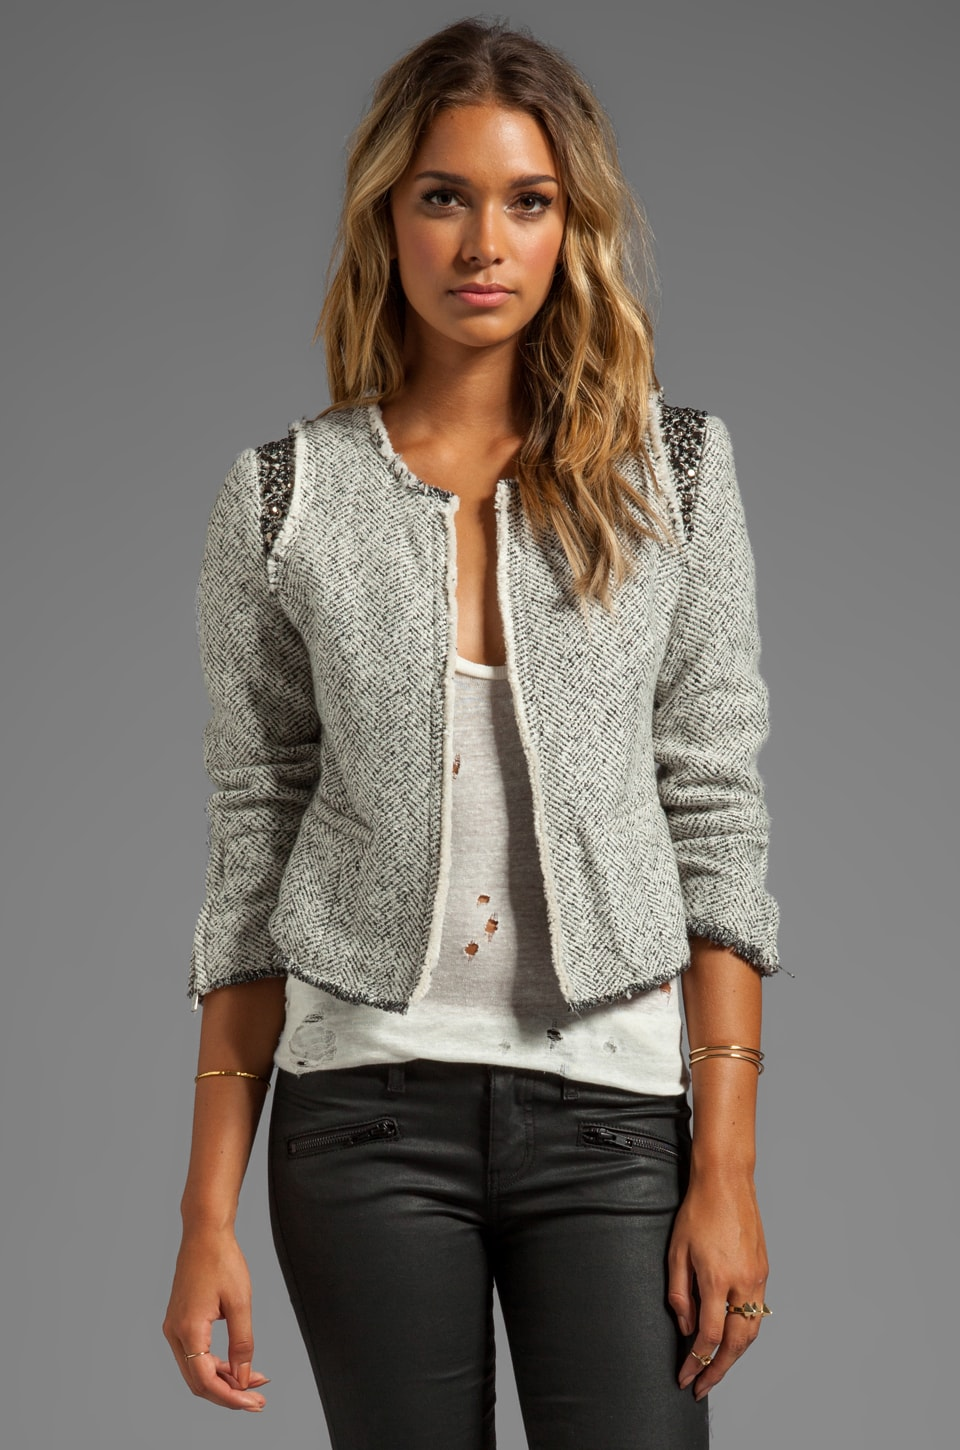 MM Couture by Miss Me Tweed Jacket w/ Beads in White